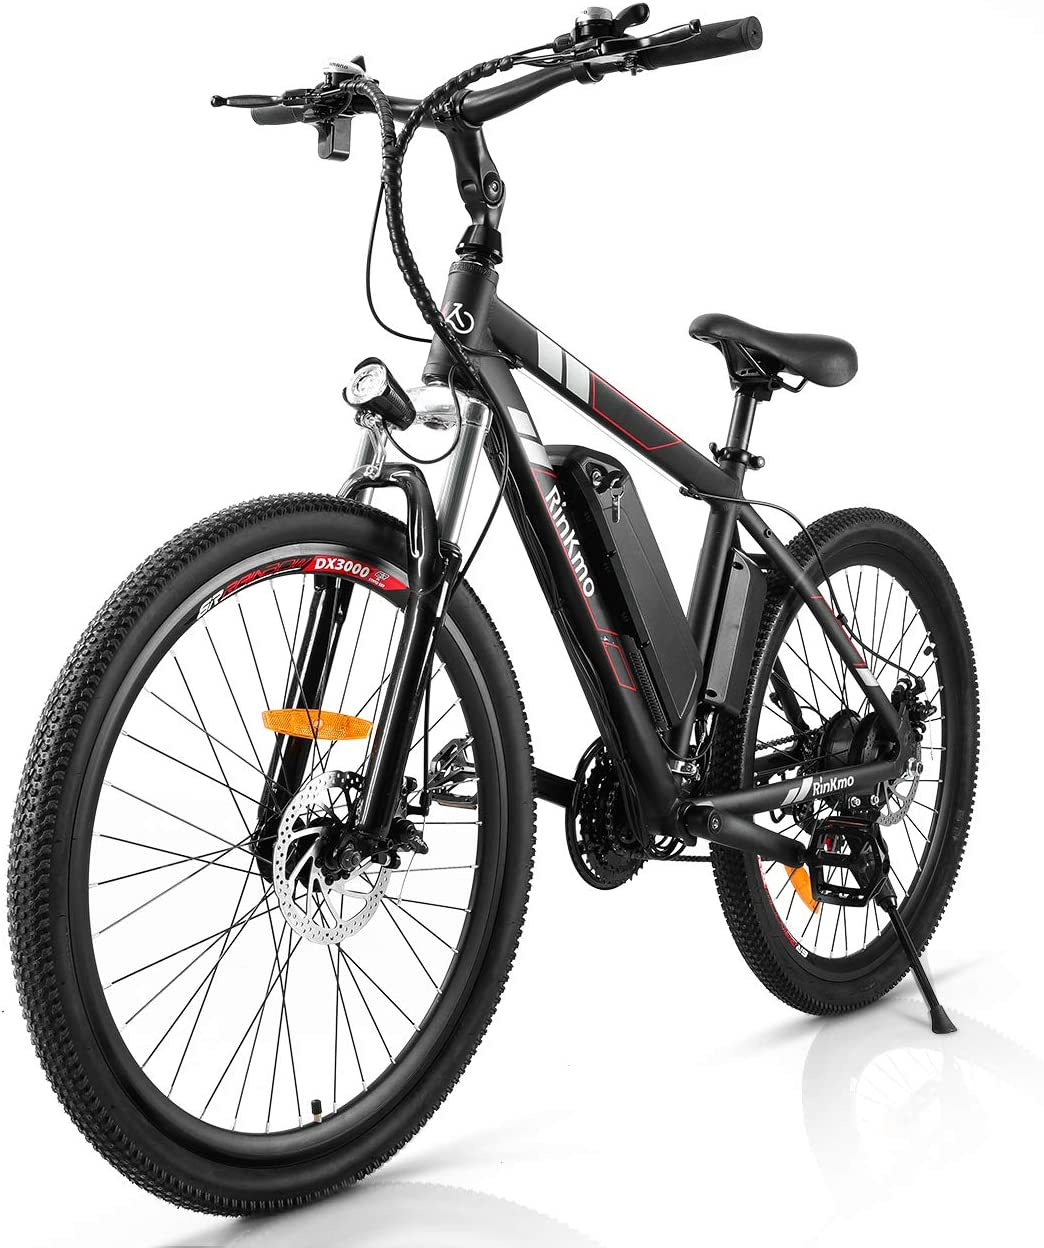 Rinkmo Electric Power-Assist Commuter